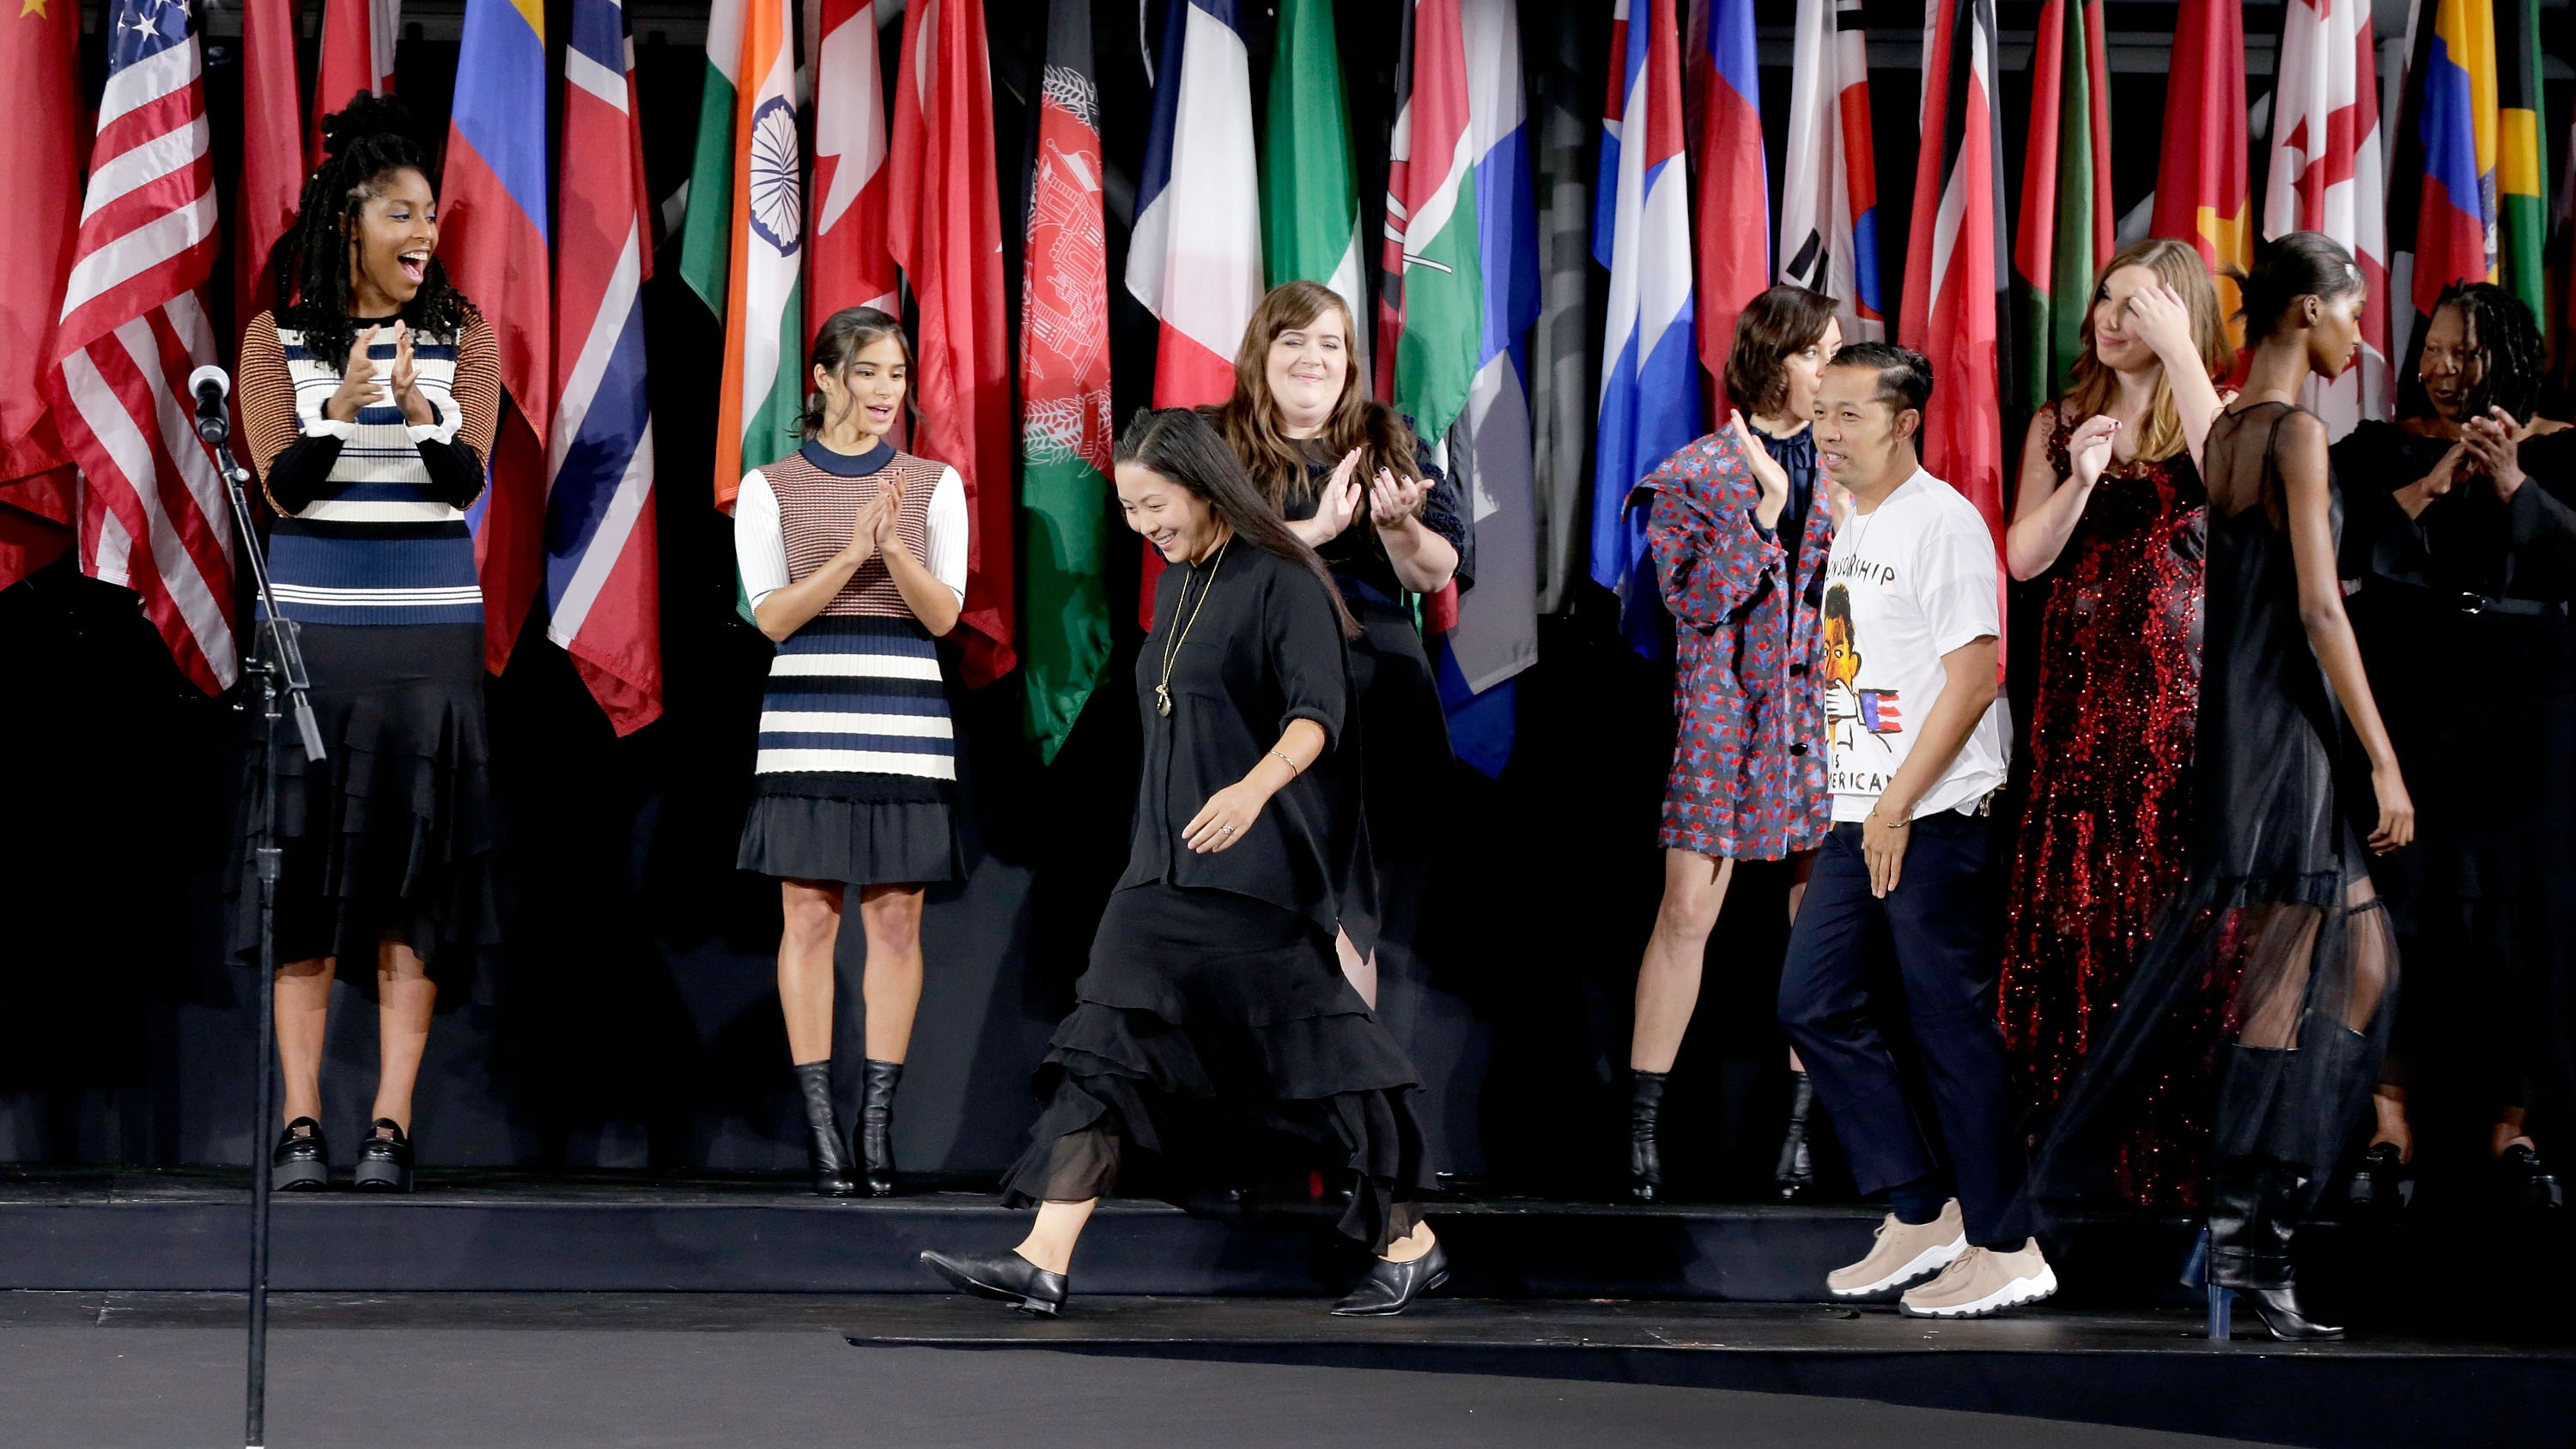 NEW YORK, NY - SEPTEMBER 11: Designers Carol Lim and Humberto Leon speak onstage during the Opening Ceremony fashion show during New York Fashion Week at Jacob Javits Center on September 11, 2016 in New York City. (Photo by JP Yim/Getty Images)